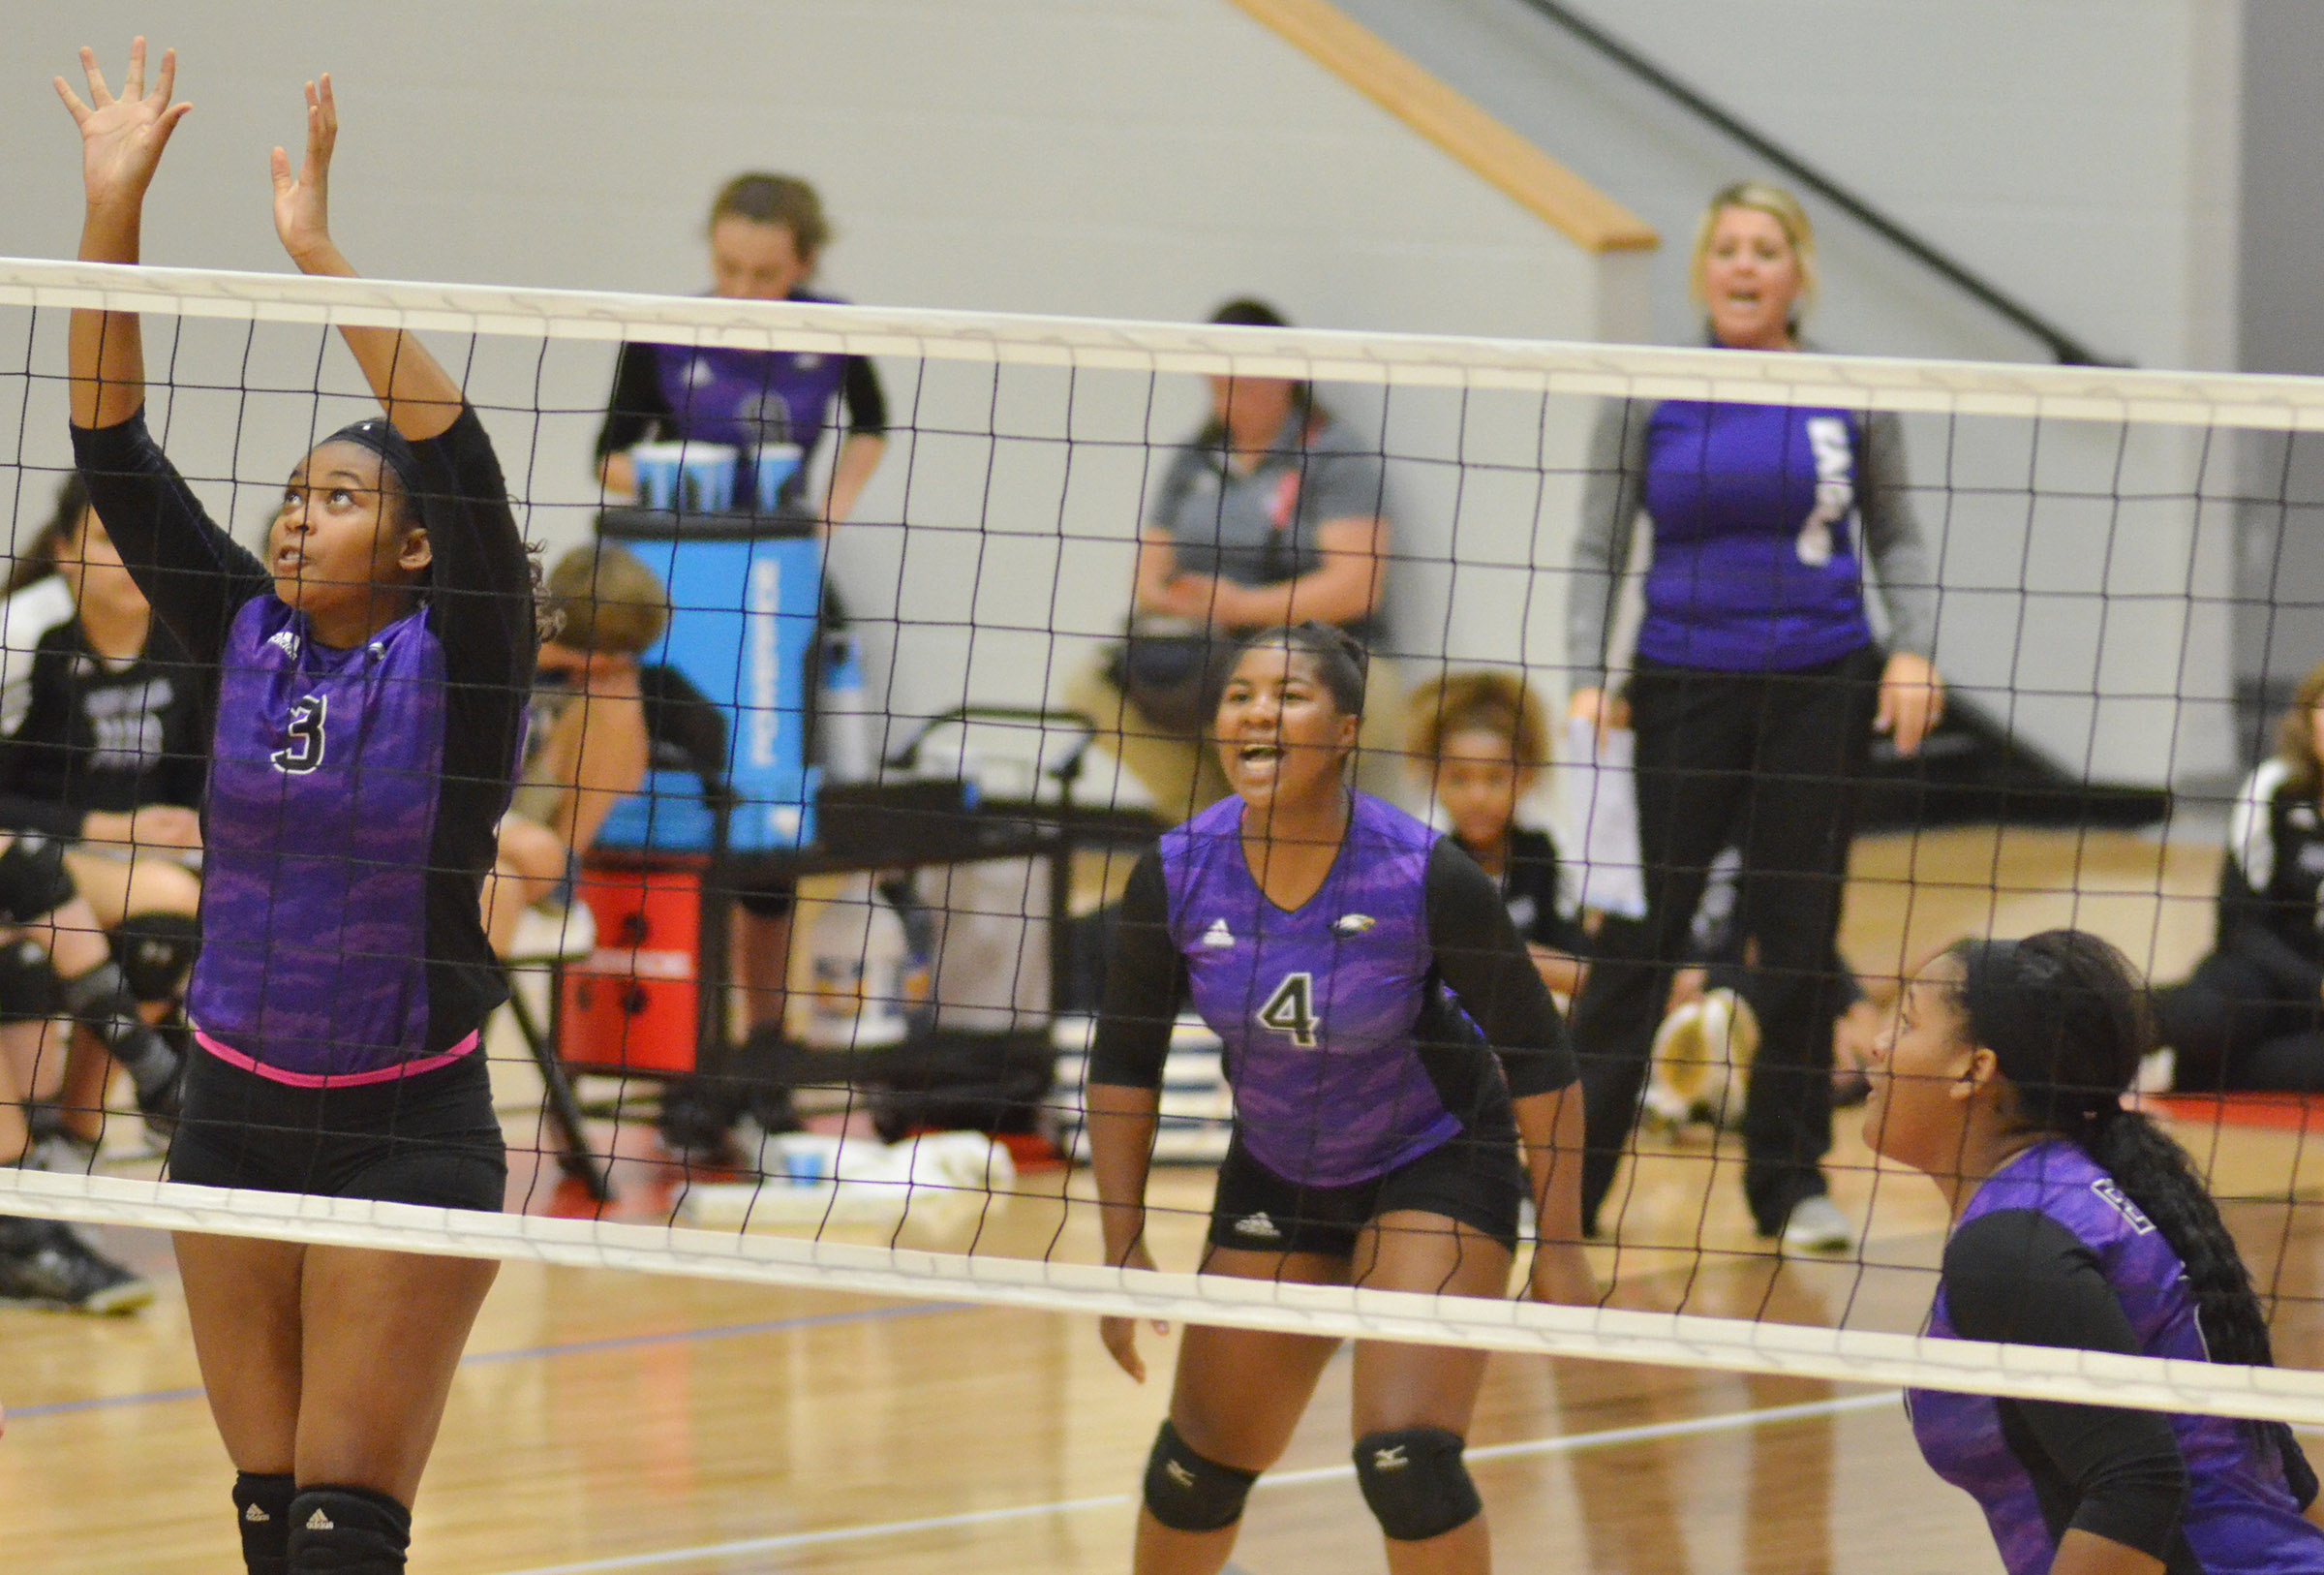 CHS senior Vonnea Smith jumps to block the ball, as classmates Nena Barnett and Kayla Young cheer for her.